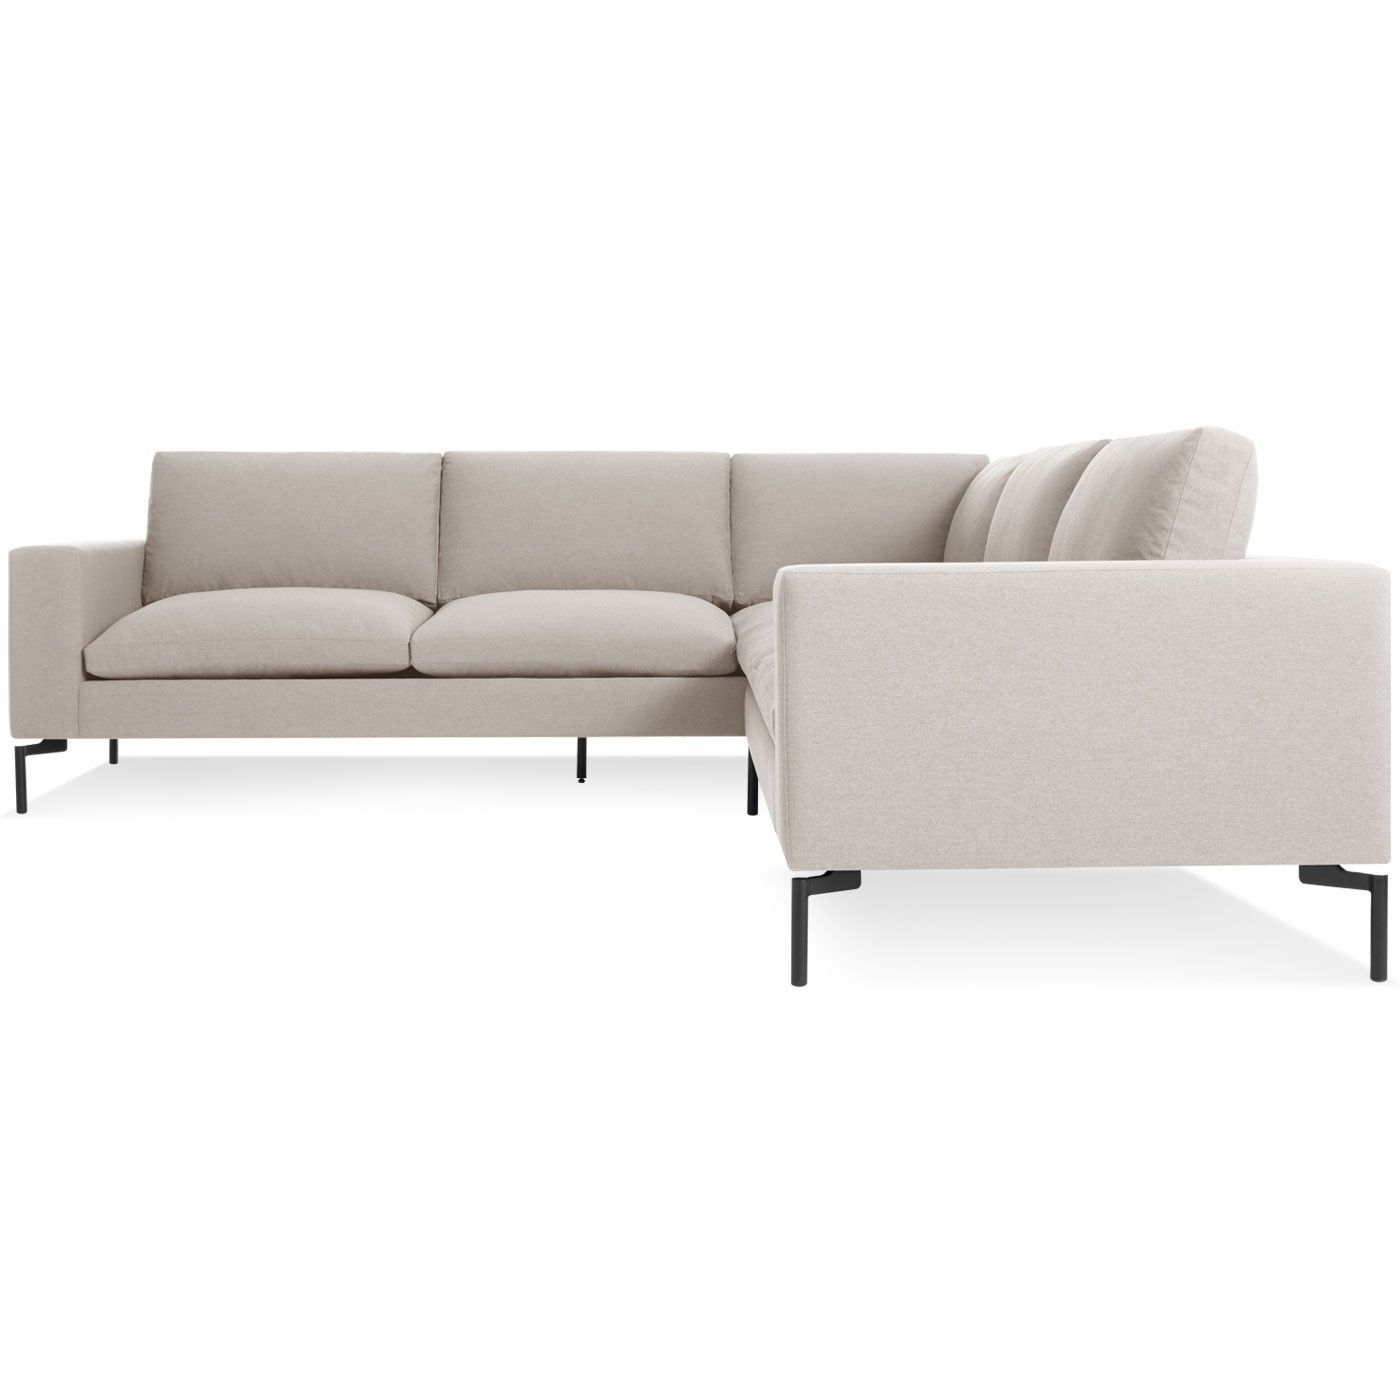 New Standard Small Sectional Sofa Modern Sofas Small Sectional Sofa Sectional Sofa Sectional Sofa Couch